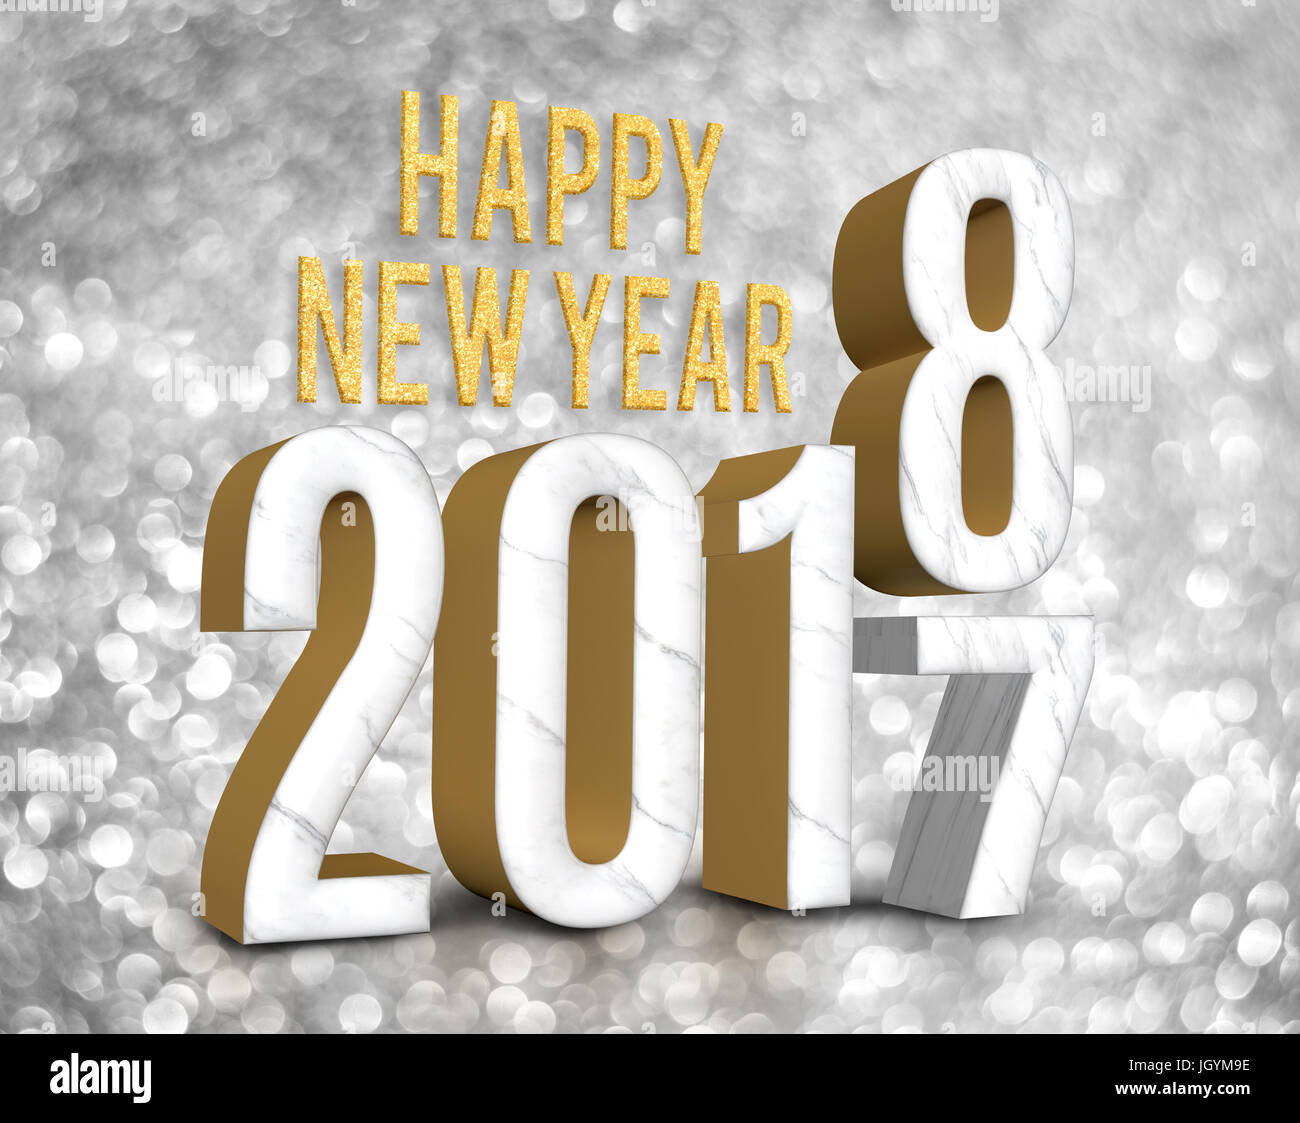 happy new year 2018 3d rendering change year from 2017 on silver happy new year 2018 3d rendering change year from 2017 on silver glitter bokeh